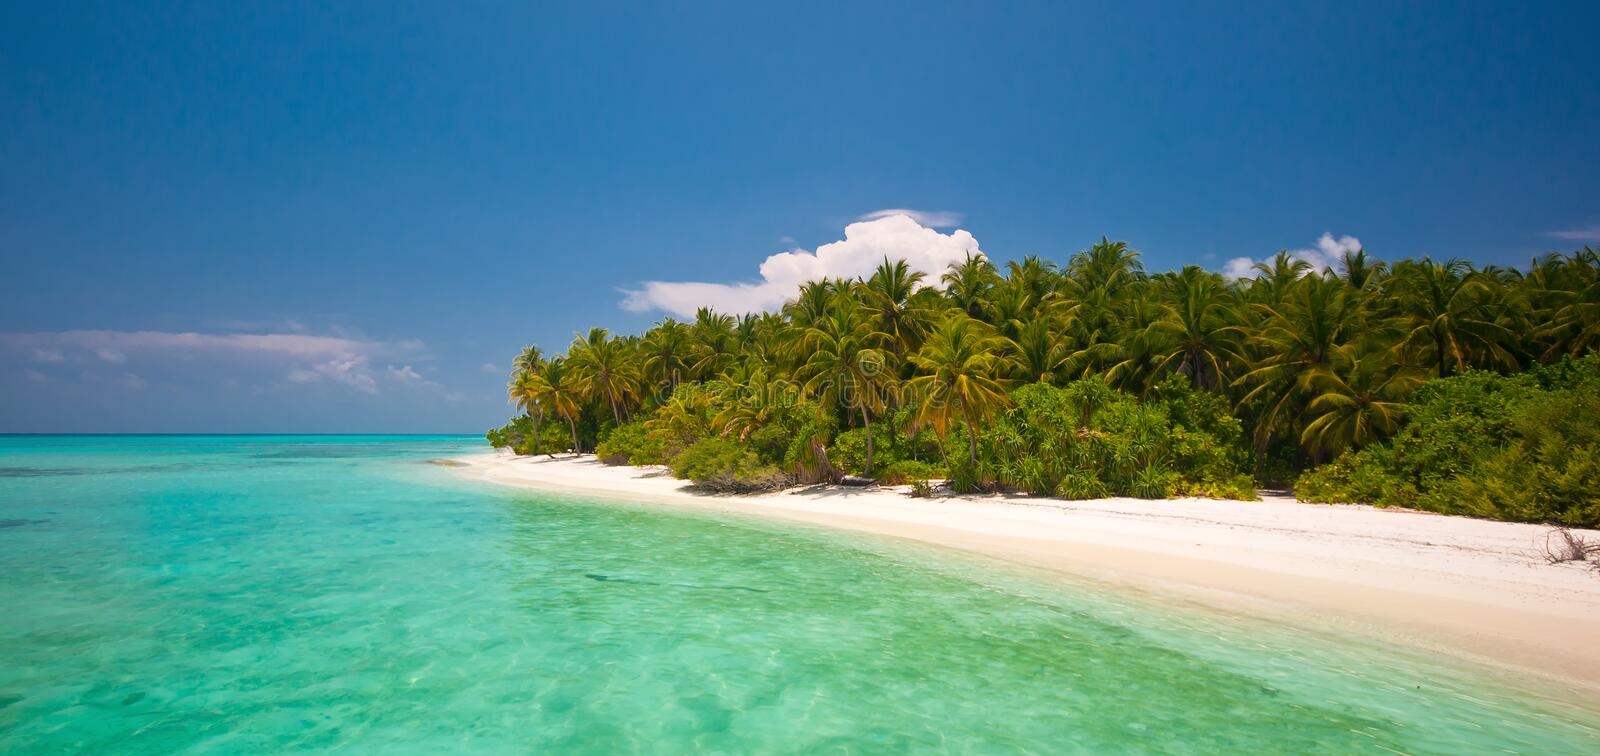 Download Untouched Island Stock Photography - Image: 14302842